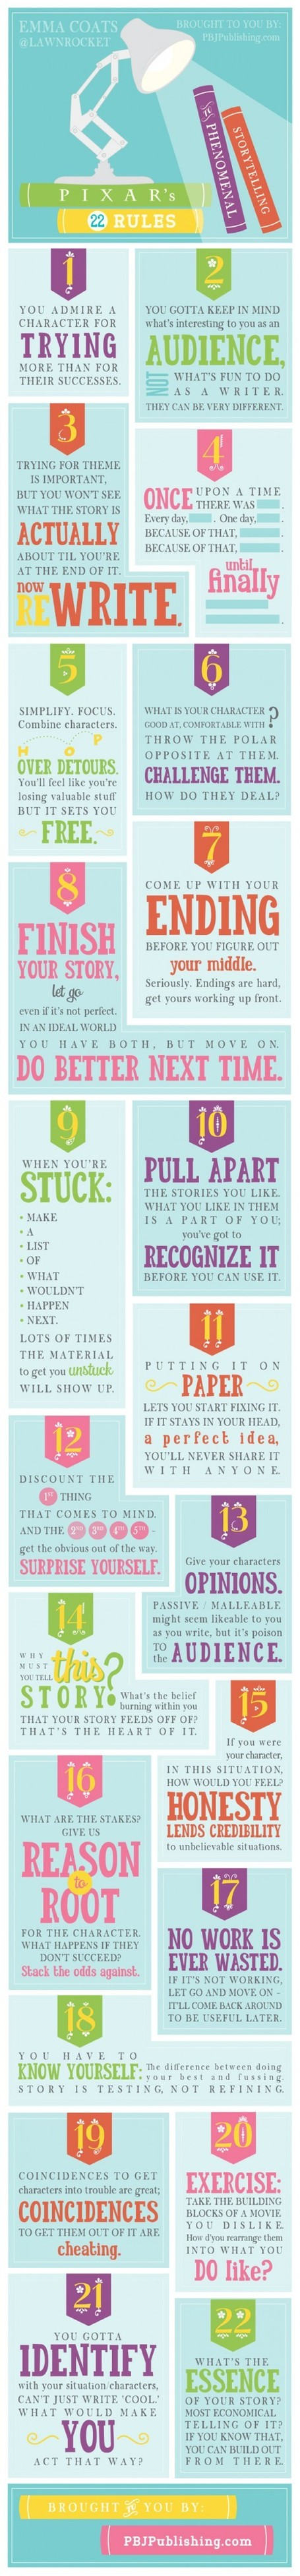 Pixar's 22 Rules to Phenomenal Storytelling [INFOGRAPHIC] | Managing options | Scoop.it